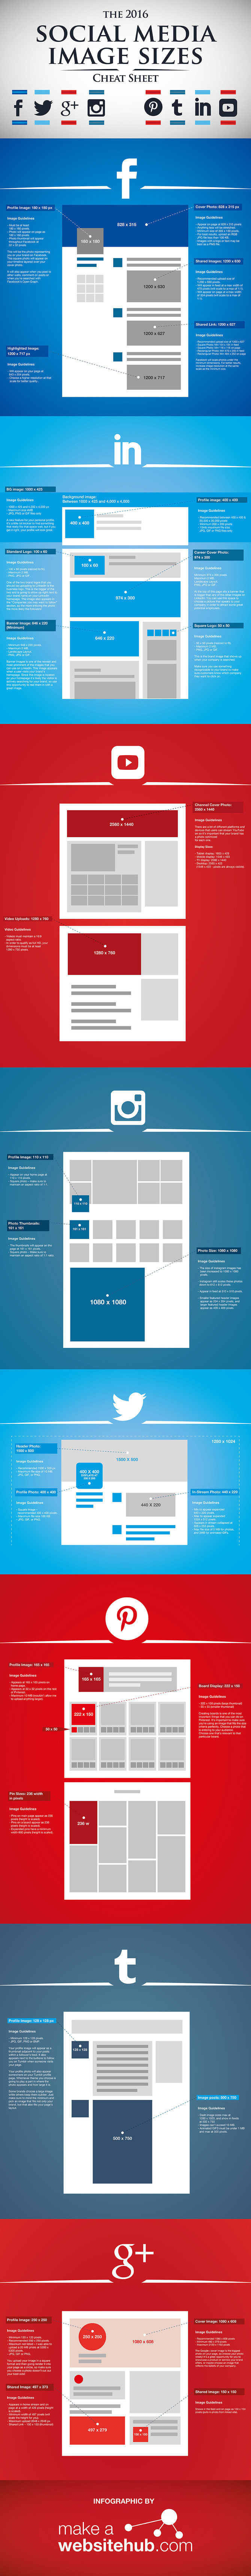 The 2016 Social Media Image Size Cheat Sheet!